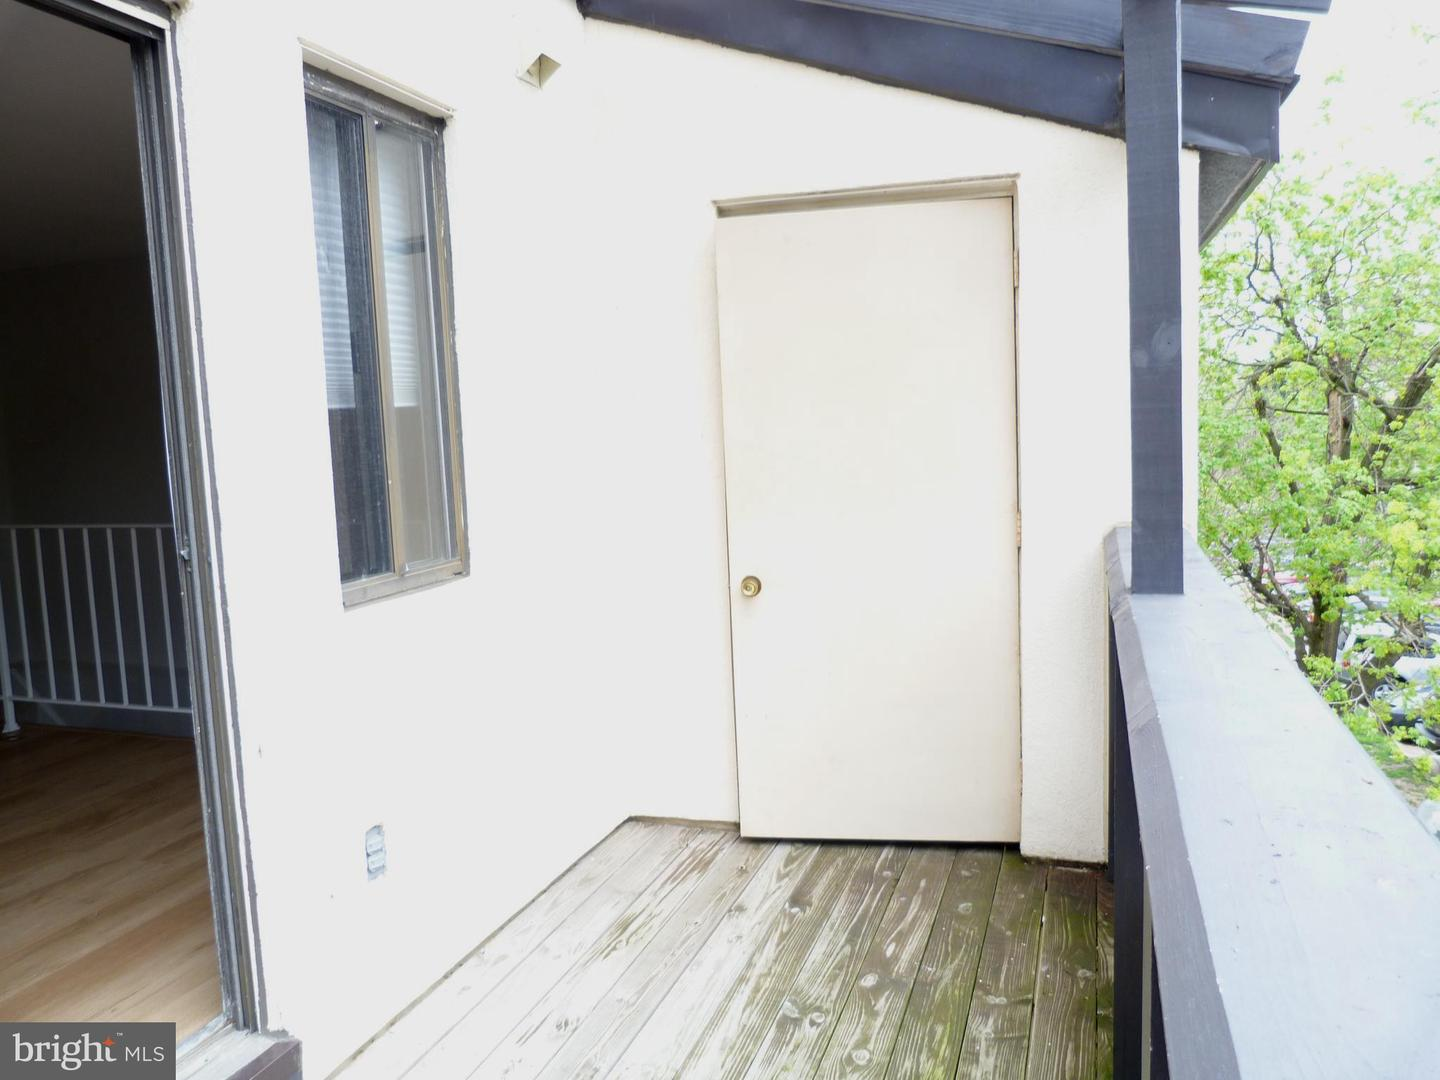 9843 HELLINGLY PL #80, GAITHERSBURG, Maryland 20886, 1 Bedroom Bedrooms, ,1 BathroomBathrooms,Common Interest,For Sale,9843 HELLINGLY PL #80,MDMC750580